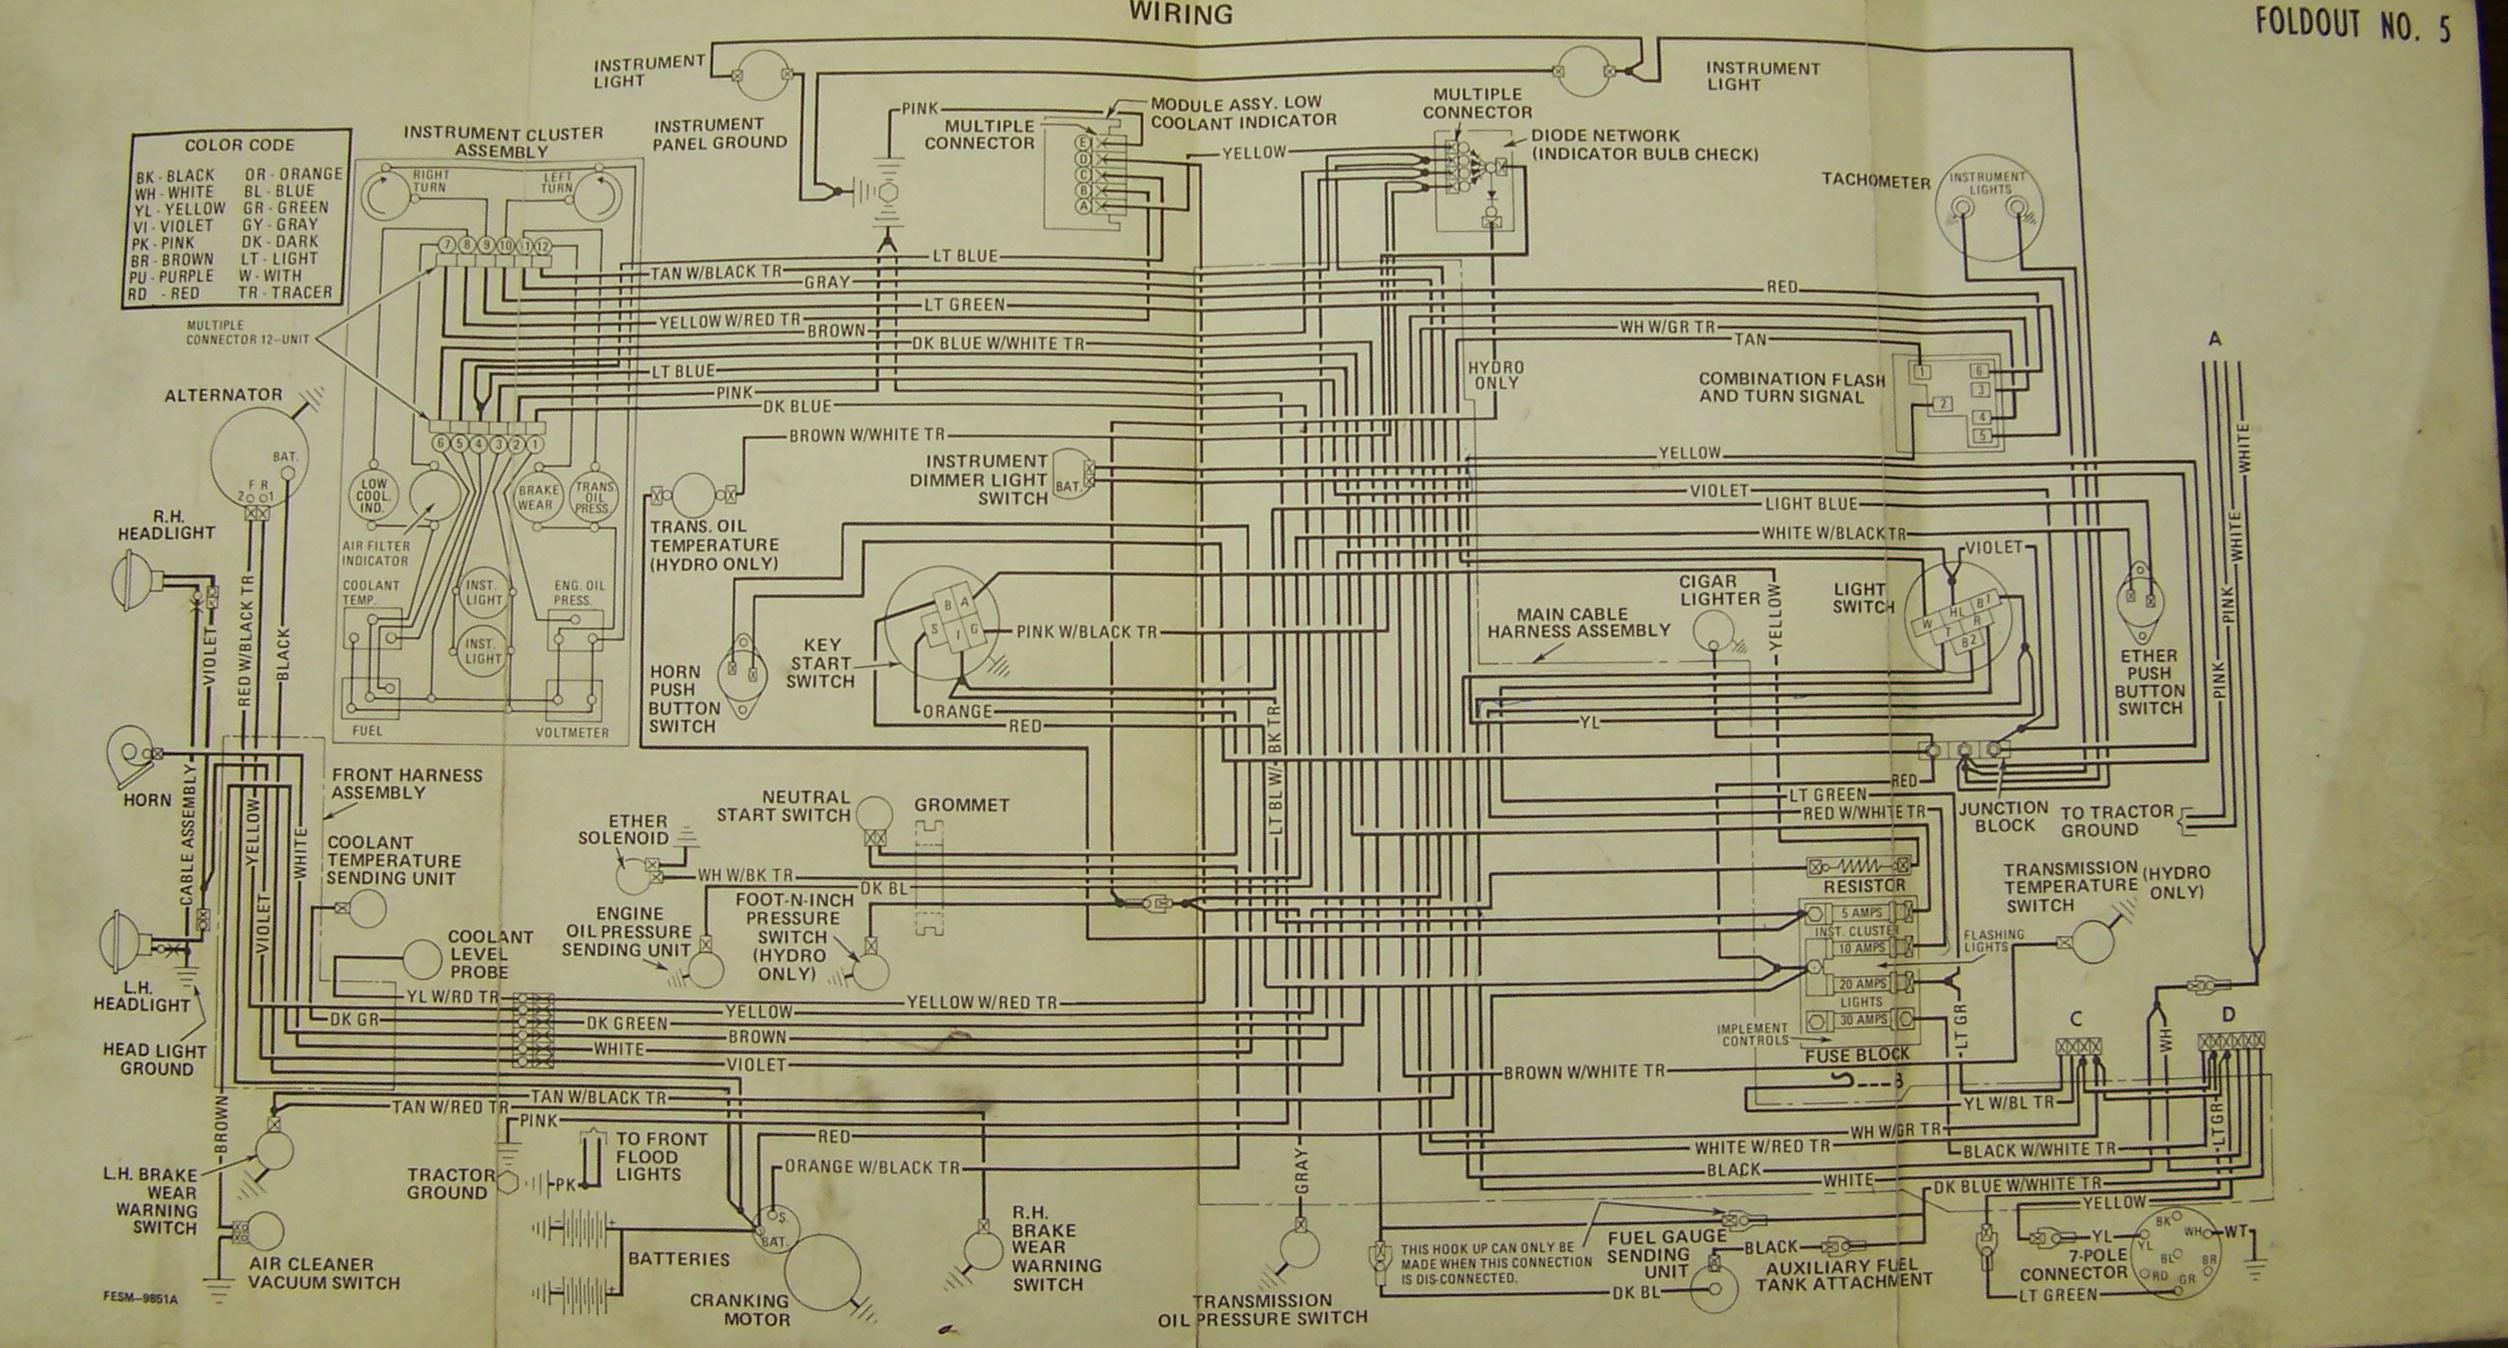 farmall 460 wiring diagram carter & gruenewald co. inc. - ih-farmall tractor ... ih 460 wiring diagram